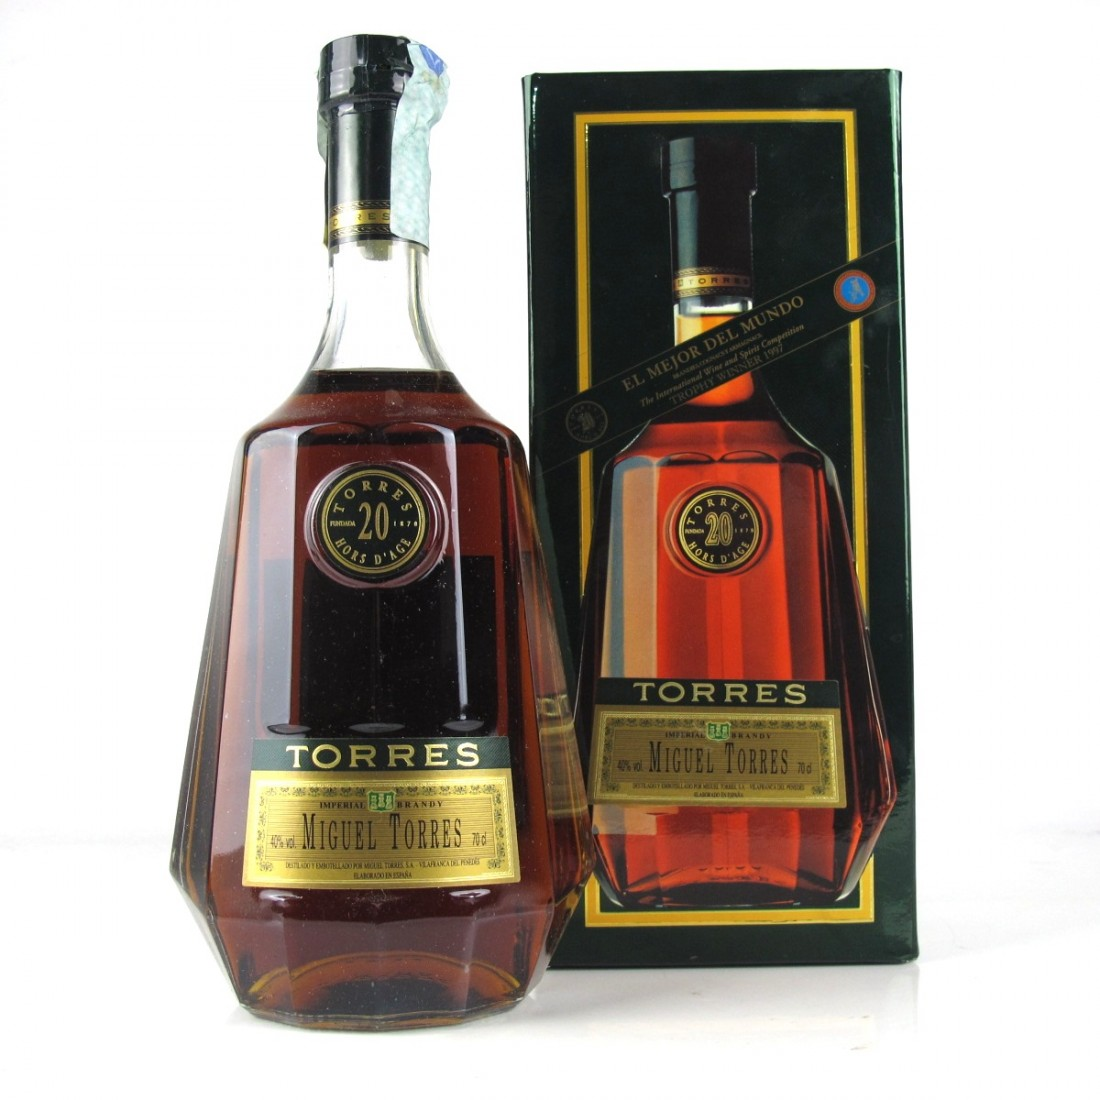 Torres 20 Year Old Hors D'Age Brandy